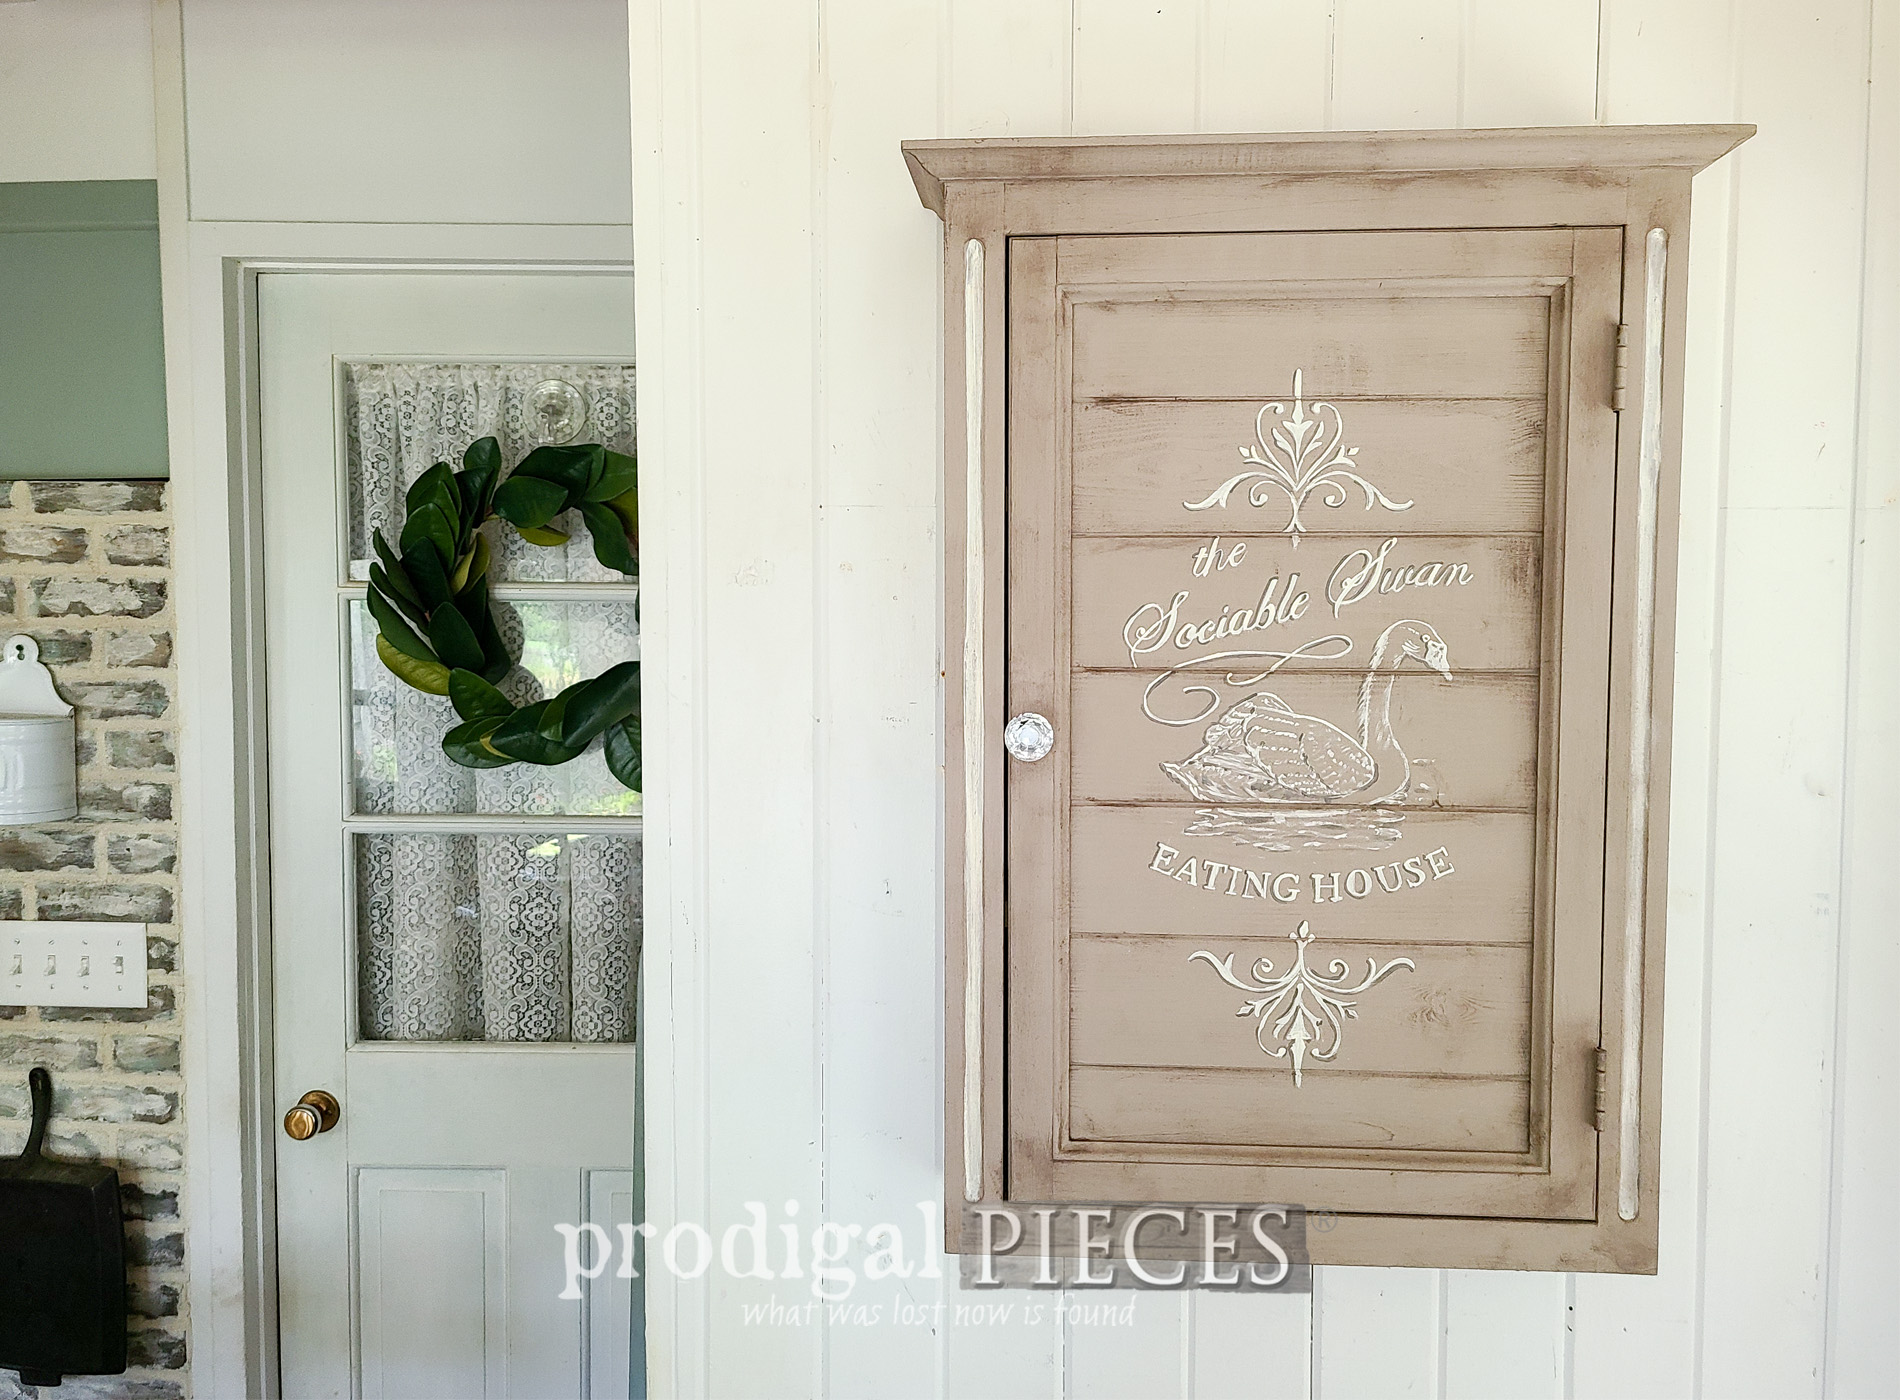 Featured Mirrored Medicine Cabinet Makeover with Vintage Style by Larissa of Prodigal Pieces | prodigalpieces.com #prodigalpieces #diy #home #farmhouse #french #upcycle